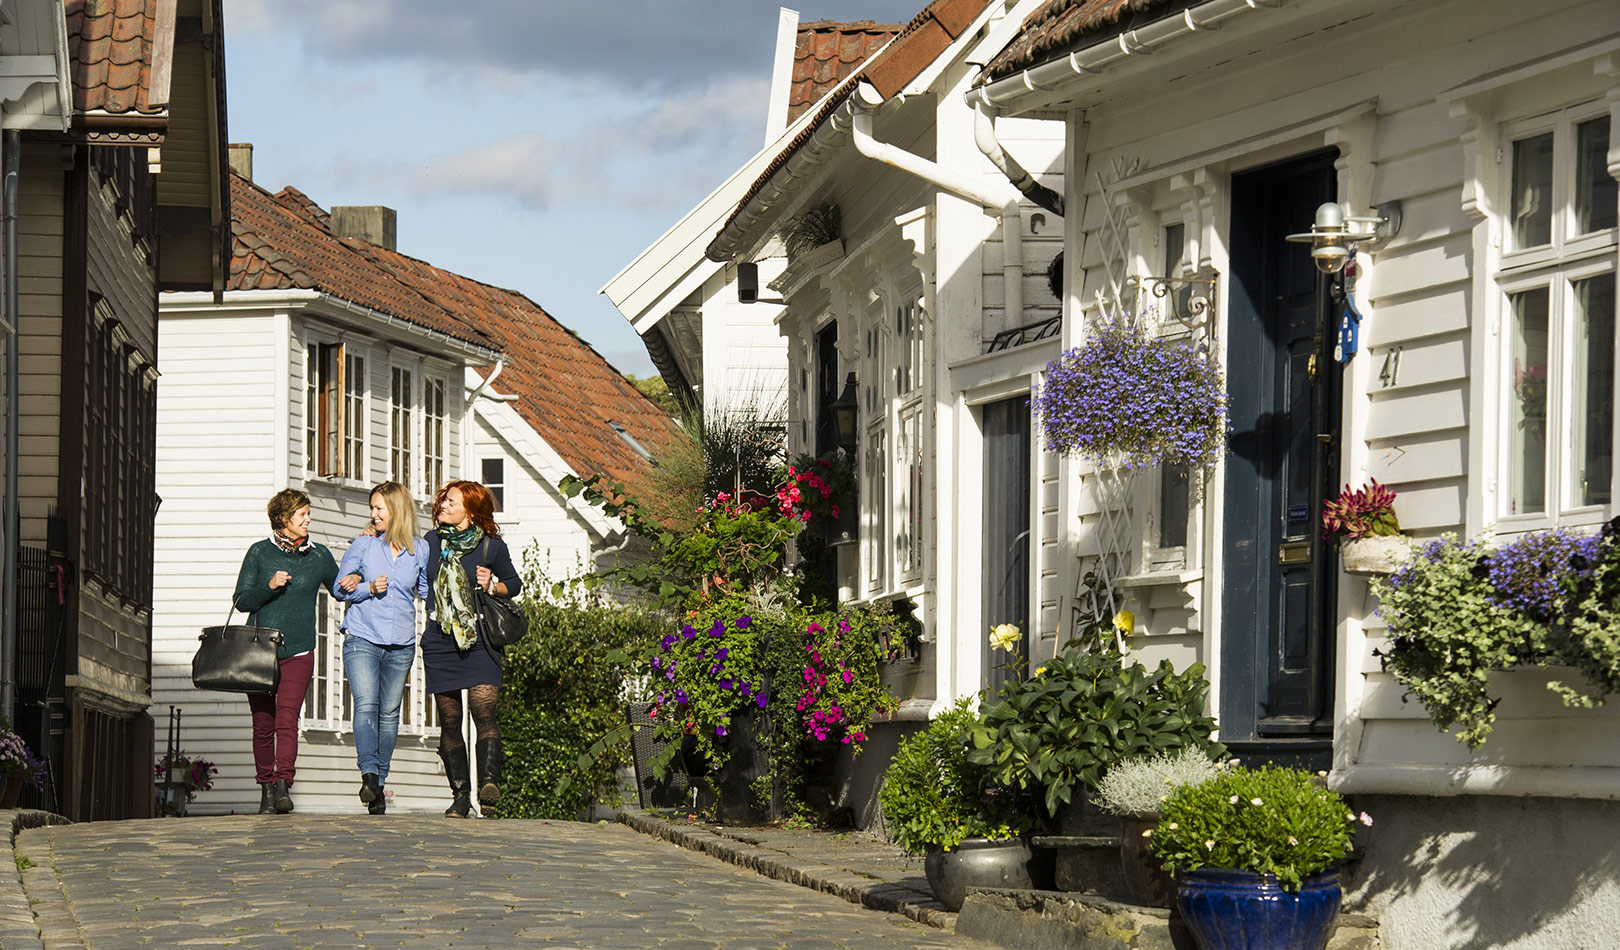 Three women walking amongst the white wooden houses in Stavanger.